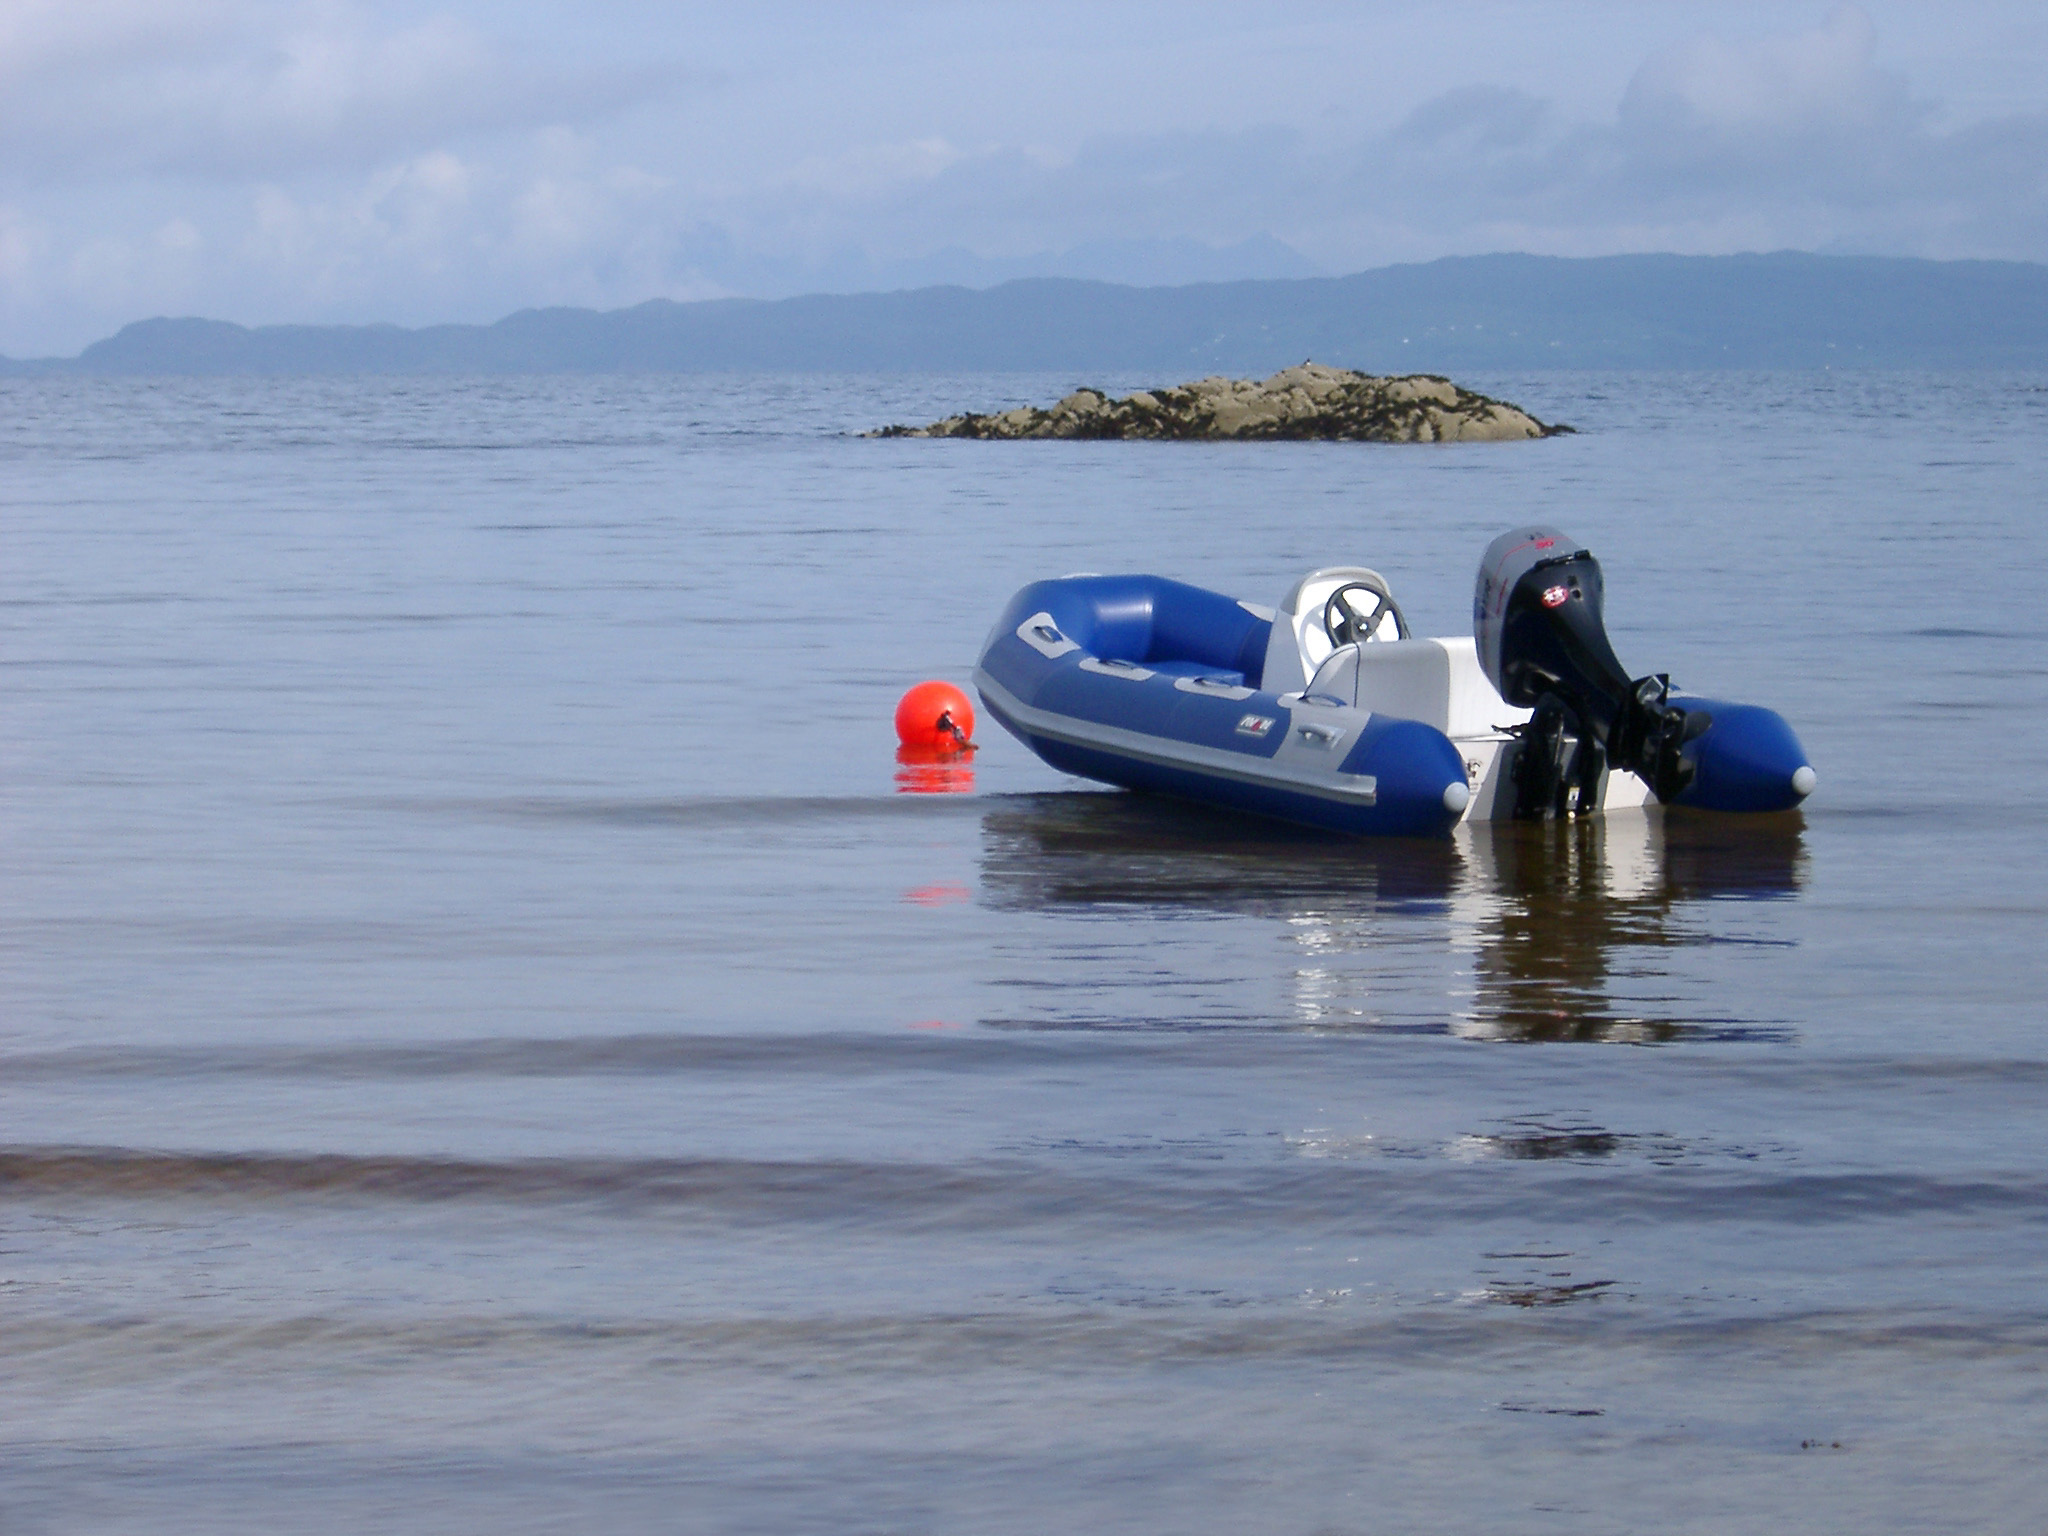 Small Blue Motorboat for Leisure Activity Resting on the Beautiful Sea at Scotland